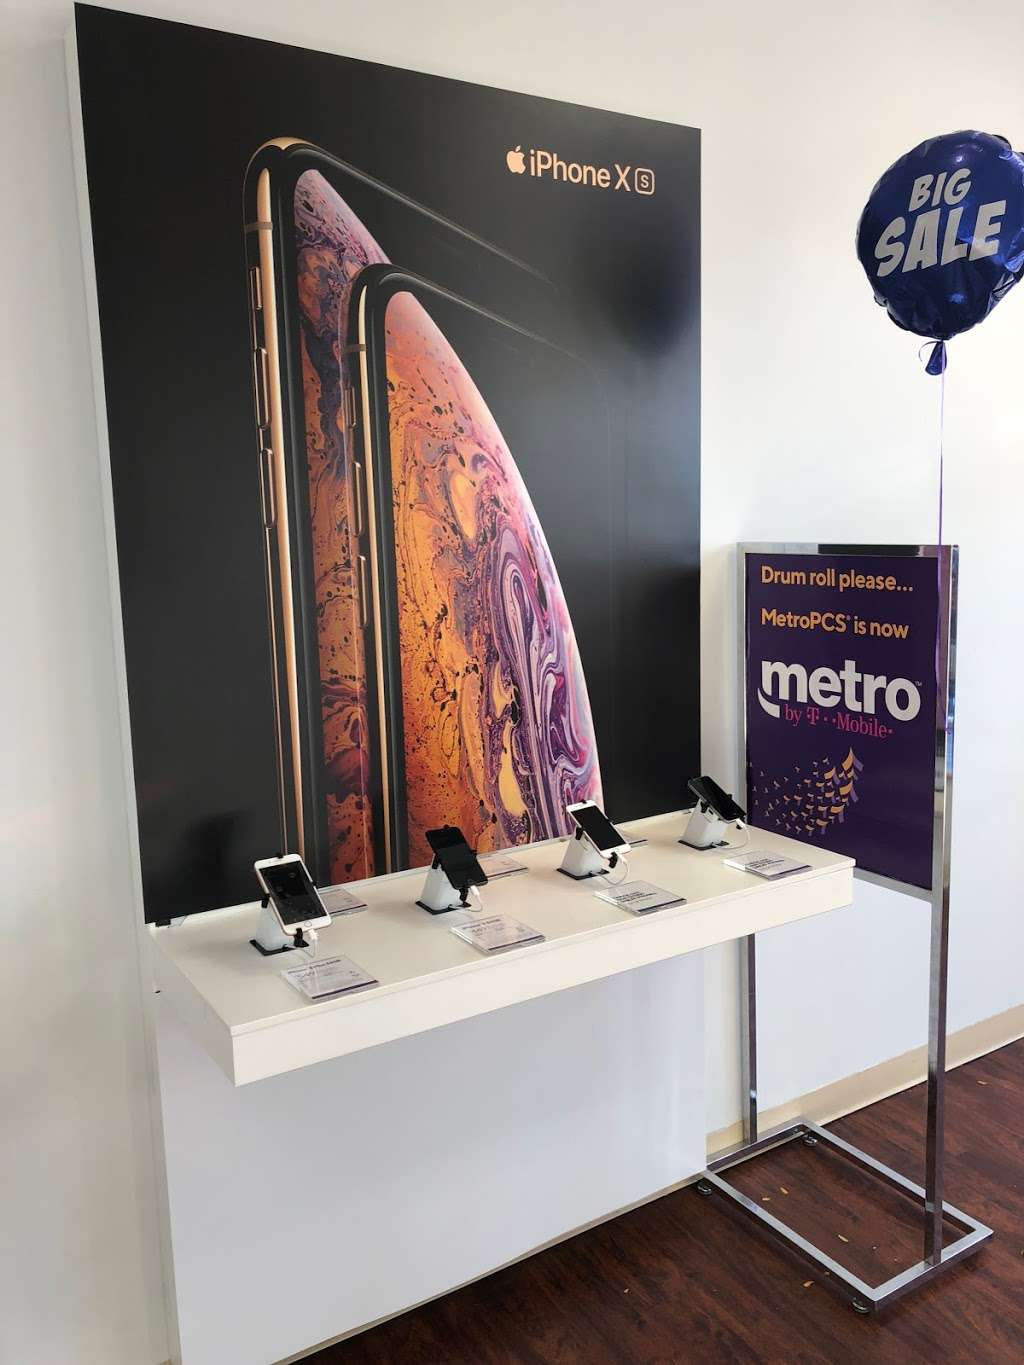 Metro by T-Mobile - electronics store  | Photo 7 of 10 | Address: 500 S River St, Hackensack, NJ 07601, USA | Phone: (201) 373-1000